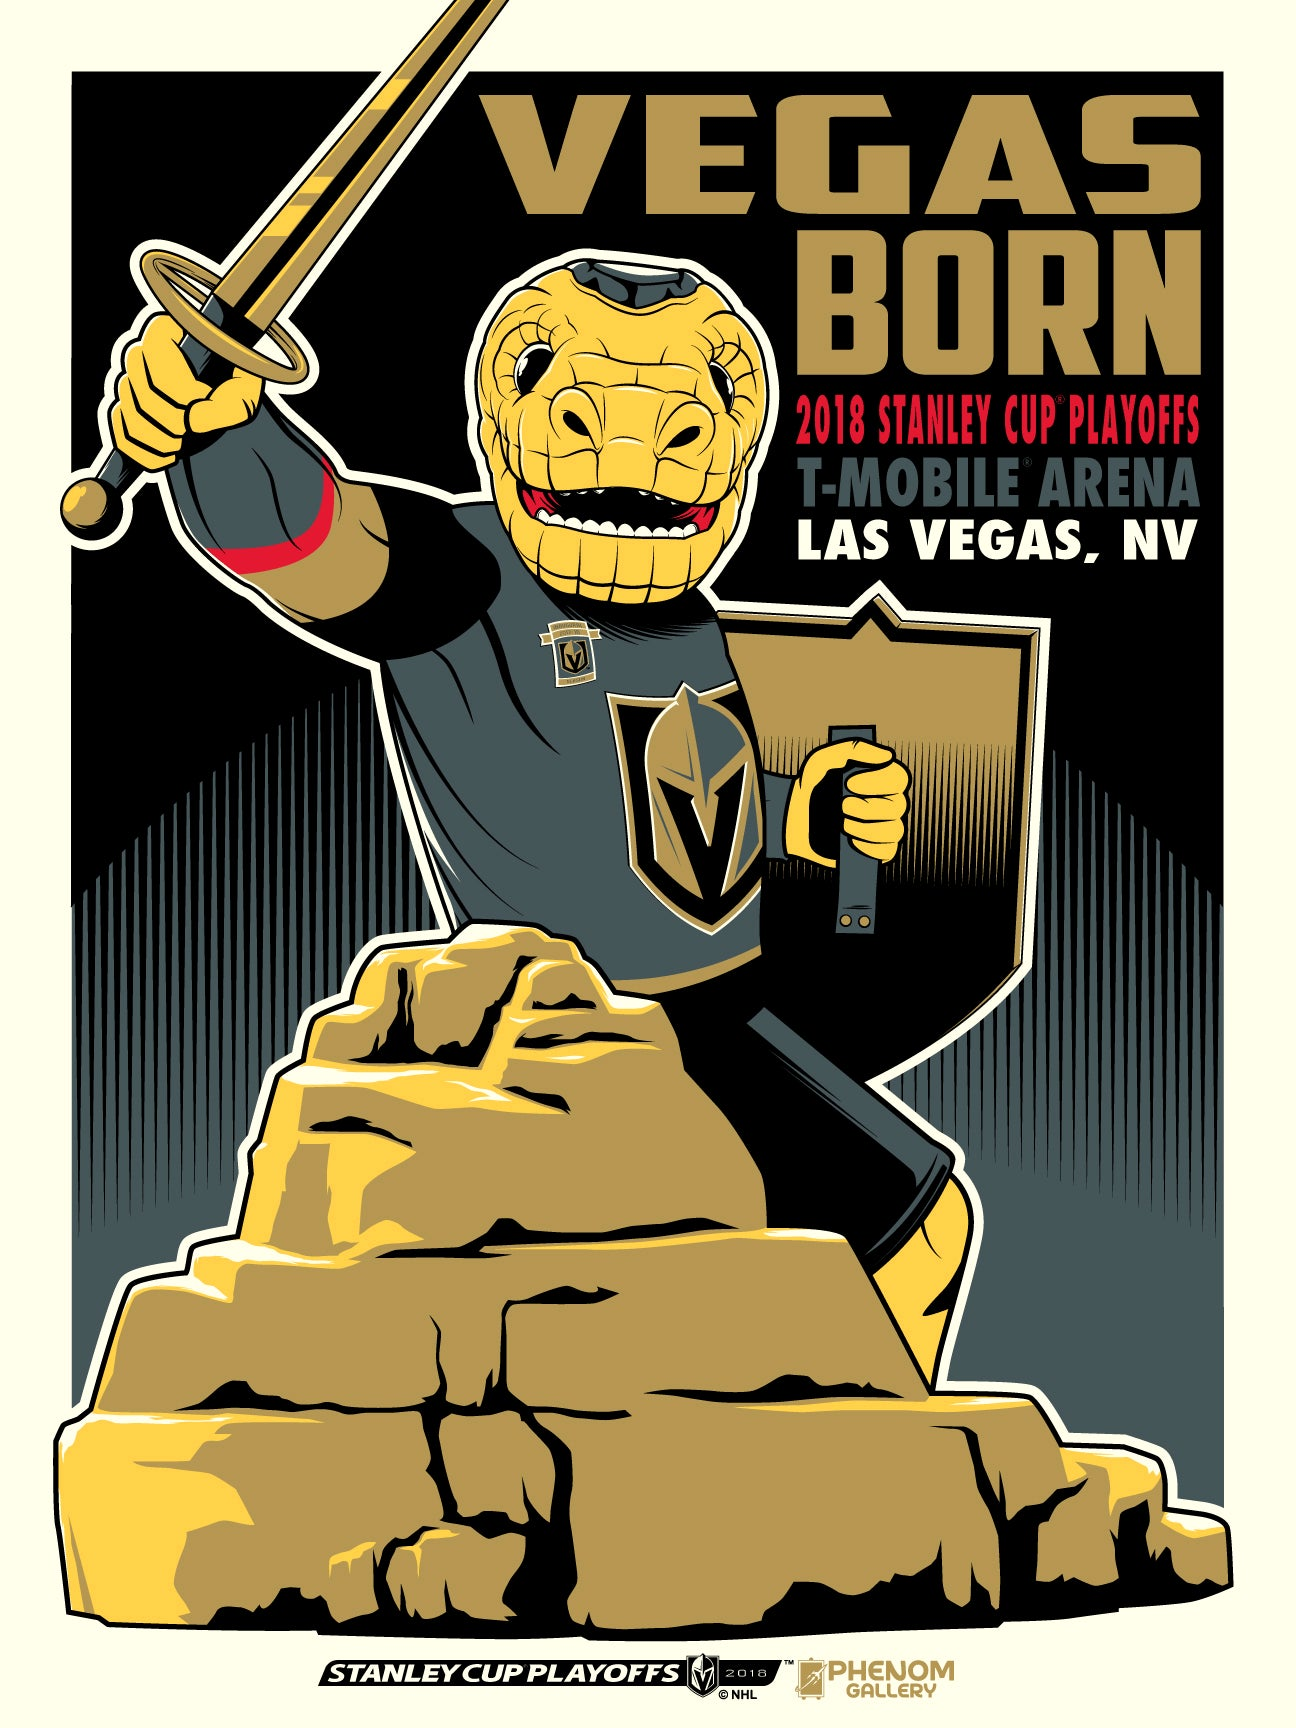 Vegas Golden Knights 2018 Stanley Cup Playoffs Serigraph (Printer Proof)